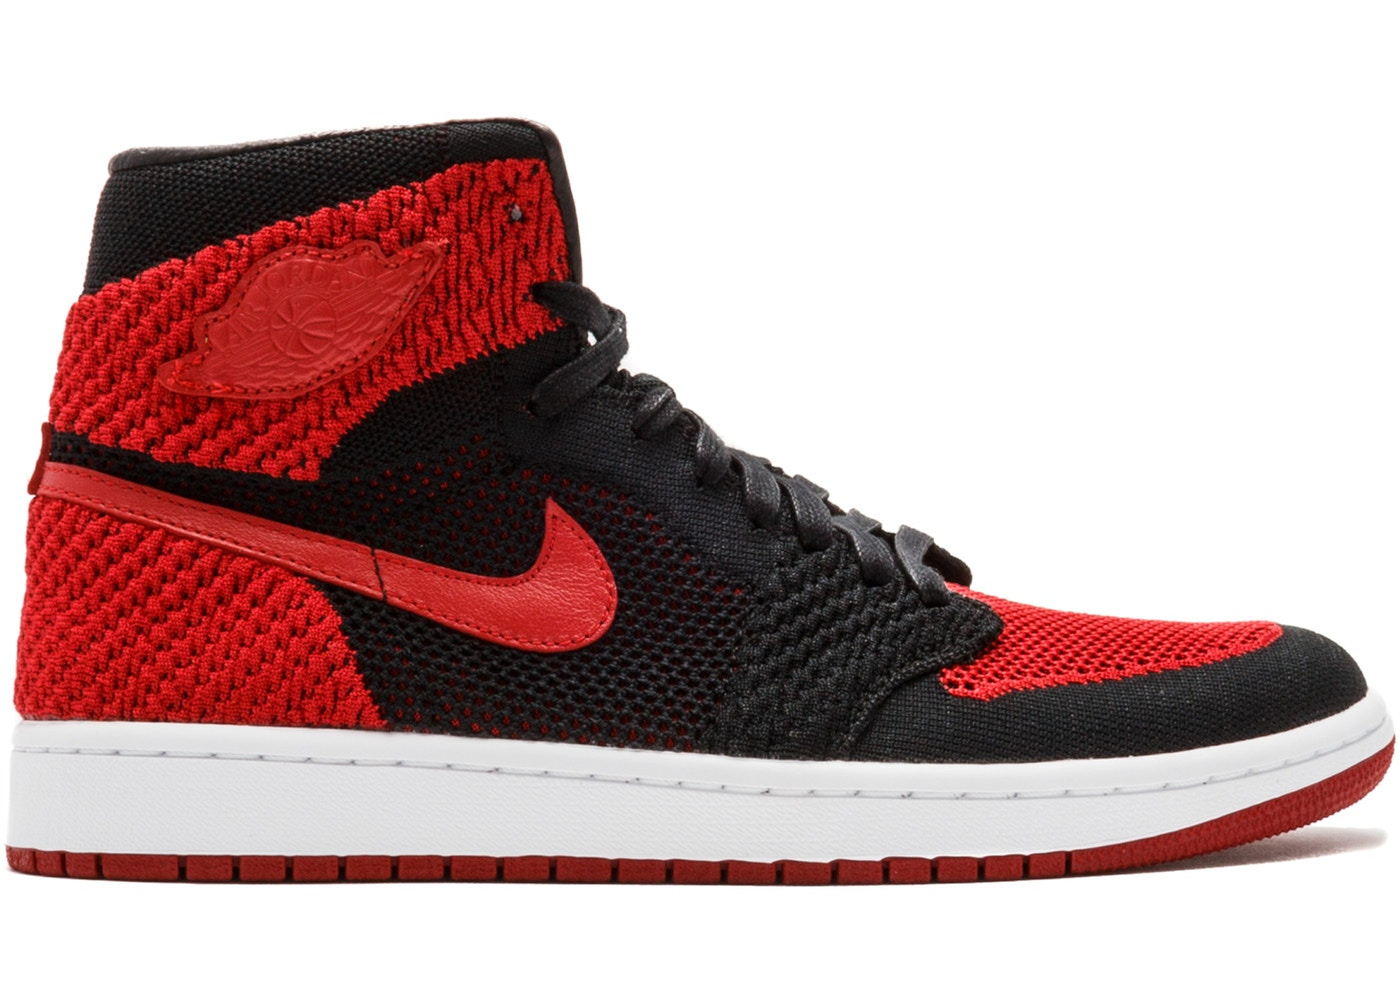 0dea6e92d0d Sell. or Ask. Size: 7.5. View All Bids. Jordan 1 Retro High Flyknit Bred